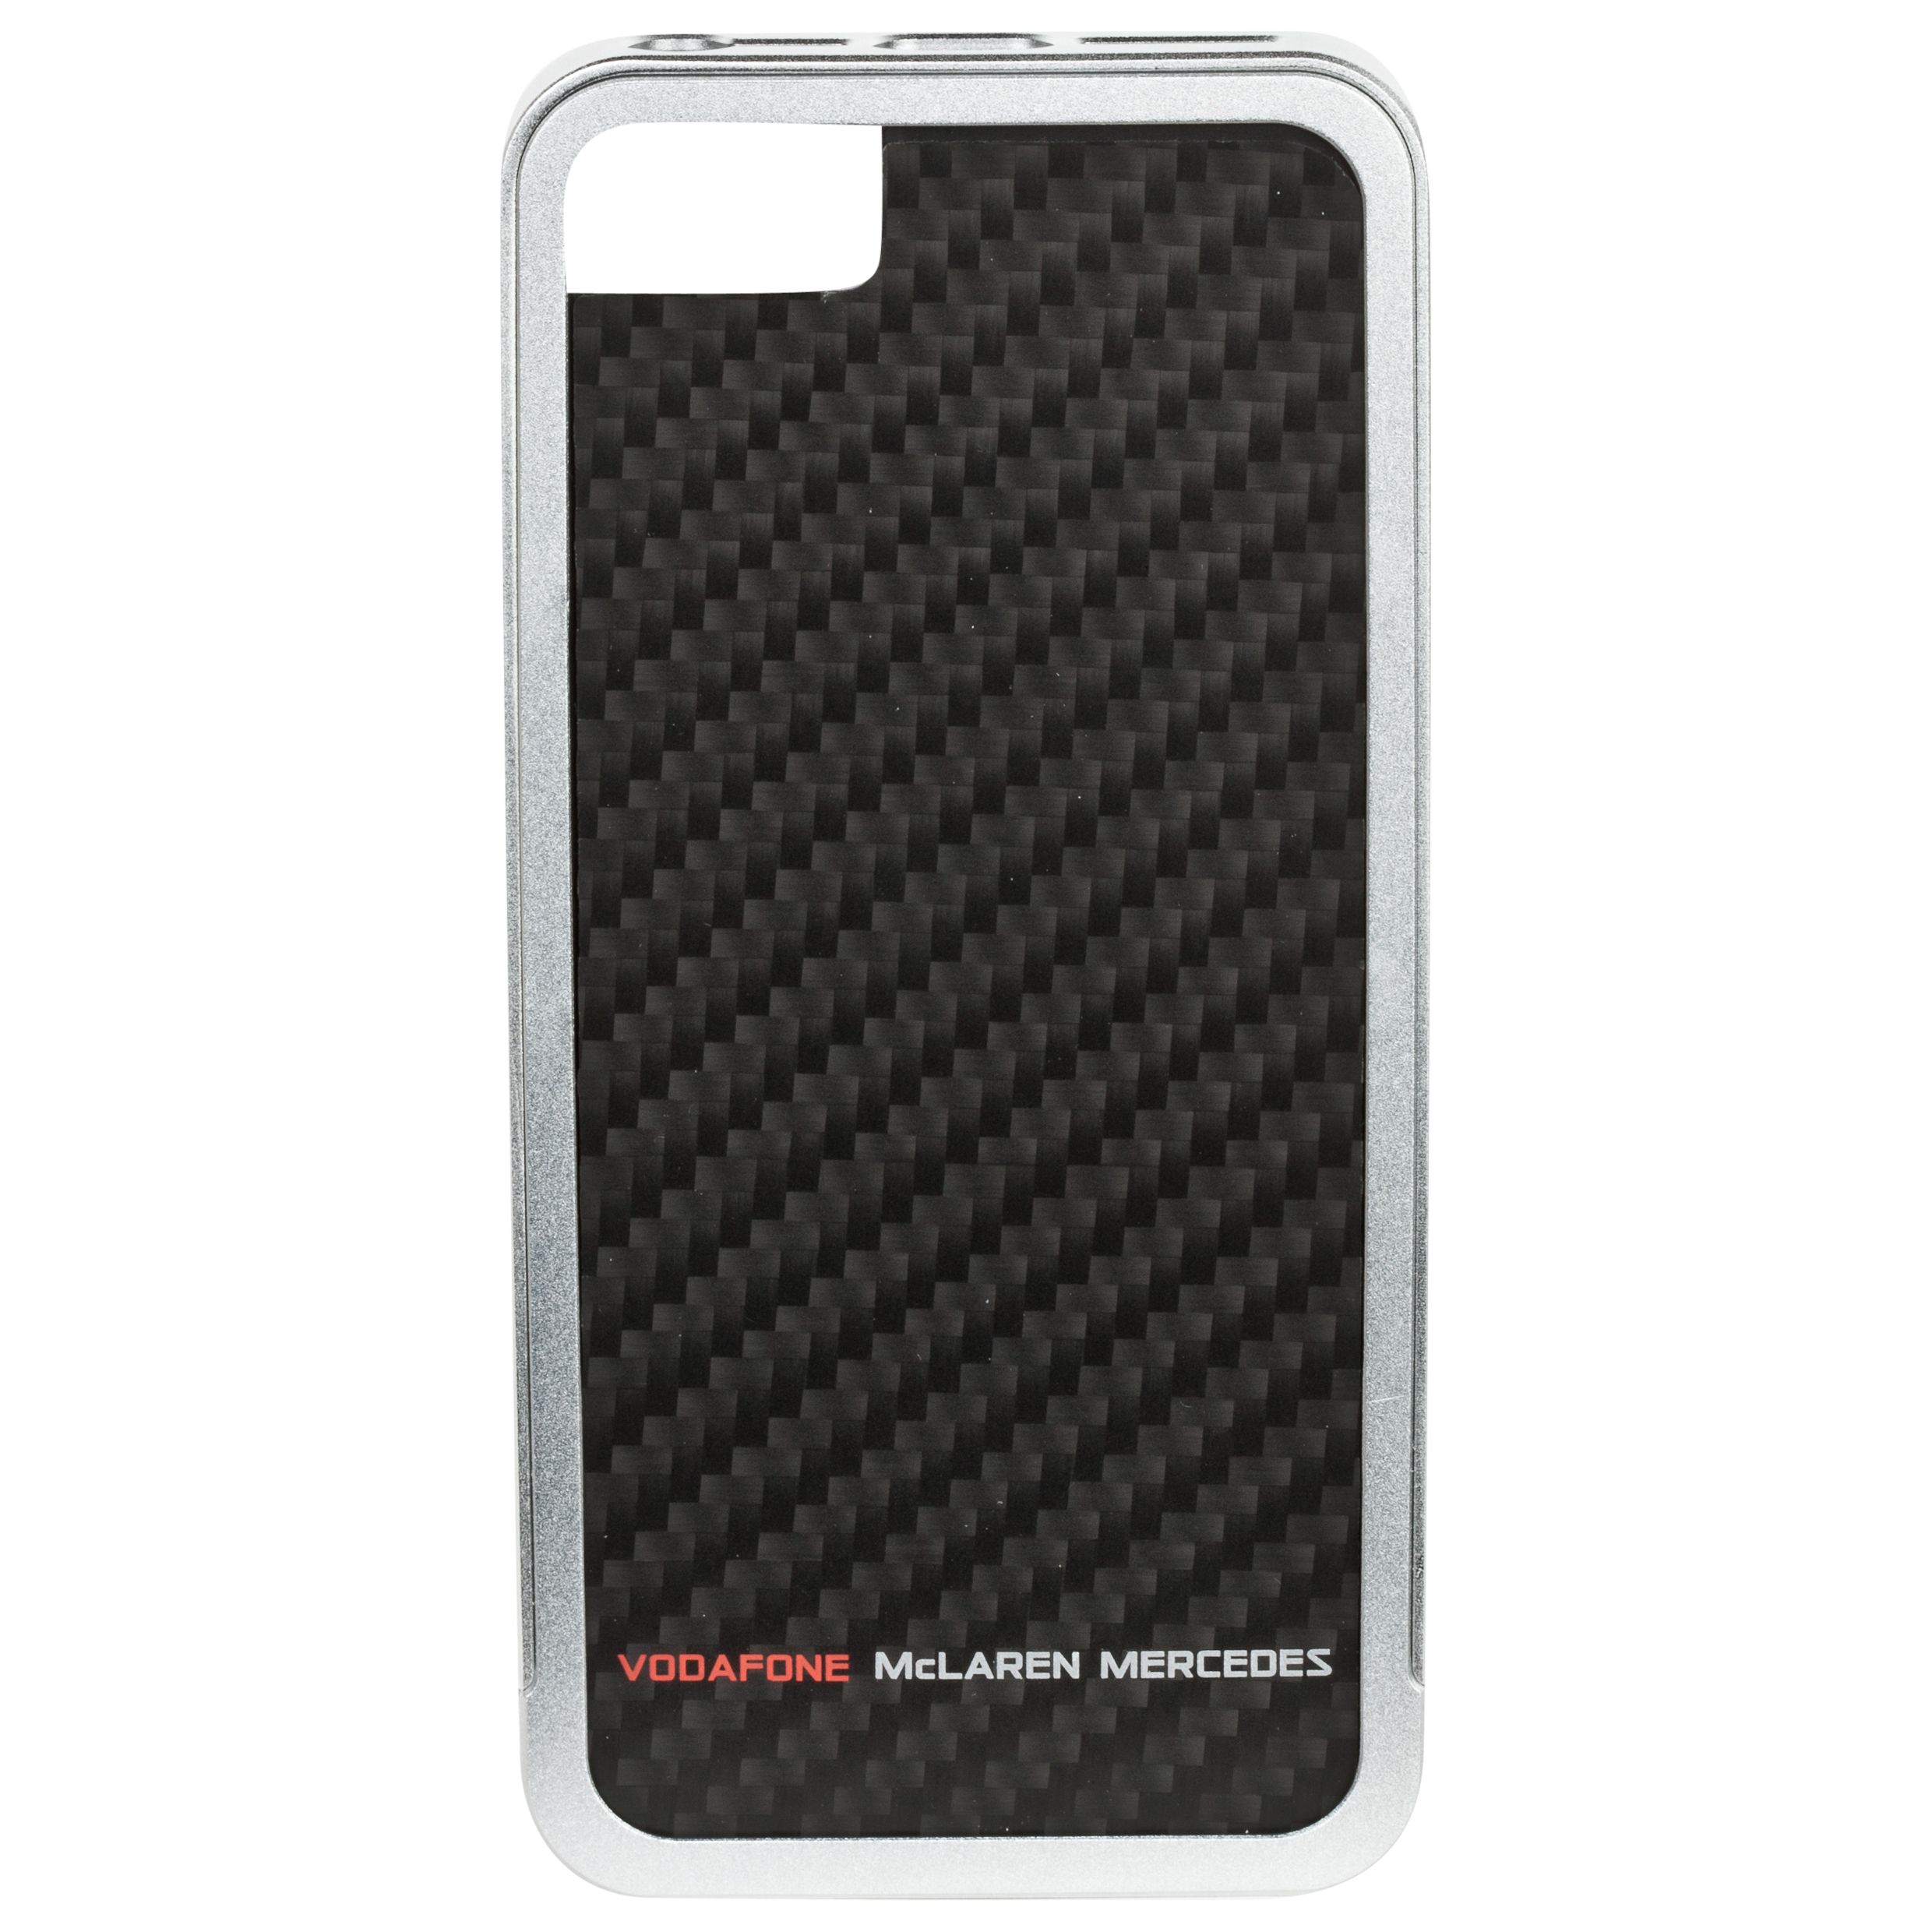 Vodafone McLaren Mercedes Premium Aluminium Bumper with Carbon Fibre Back Plate for iPhone 5 Grey